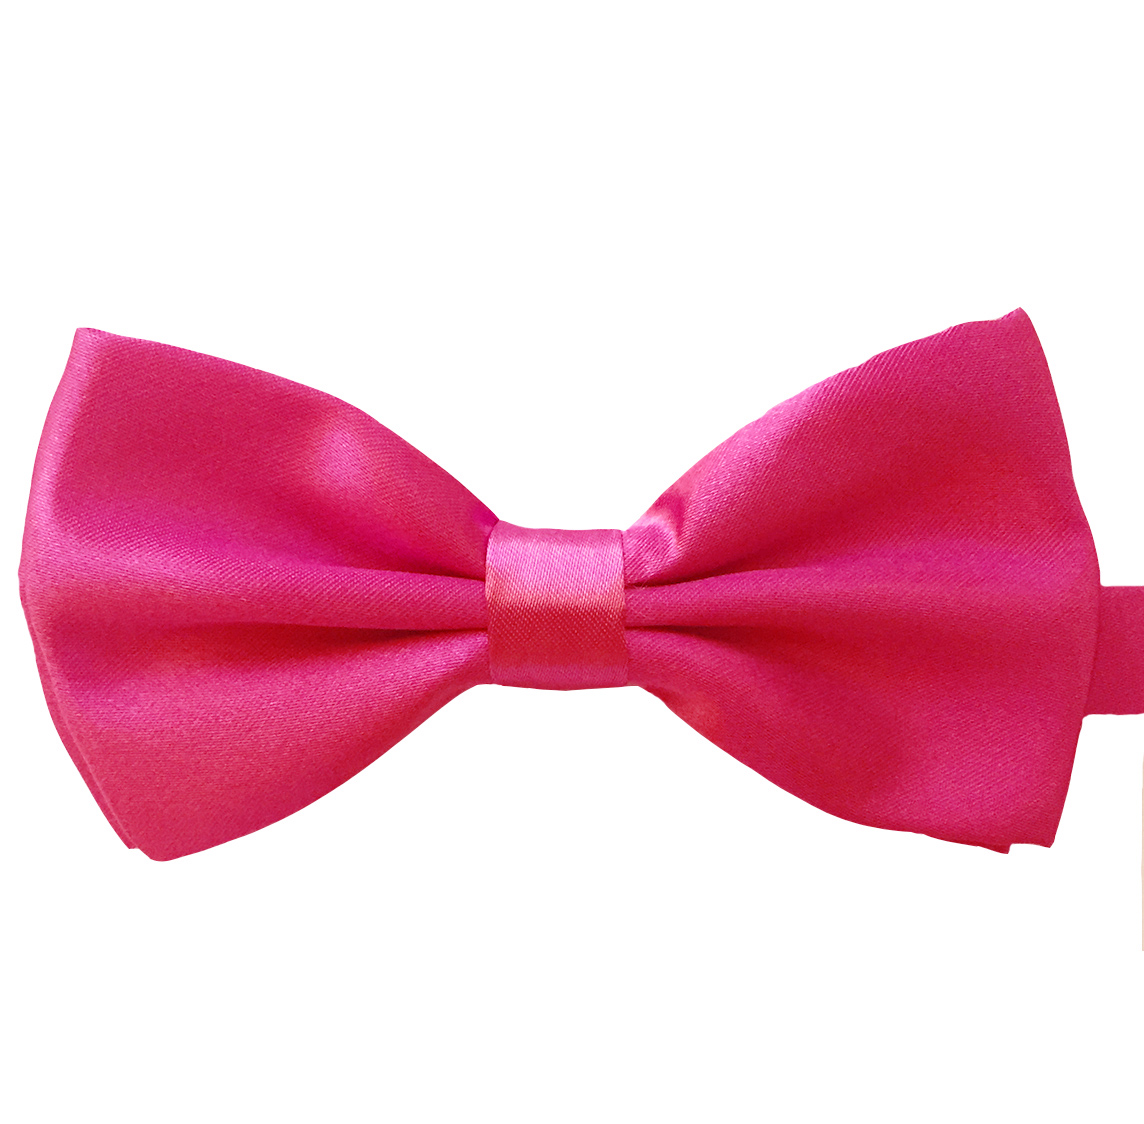 Hot Pink Bow Tie Shop Mens Ties Online Ties Australia Be sure to check out bow flats and pink bow. hot pink bow tie